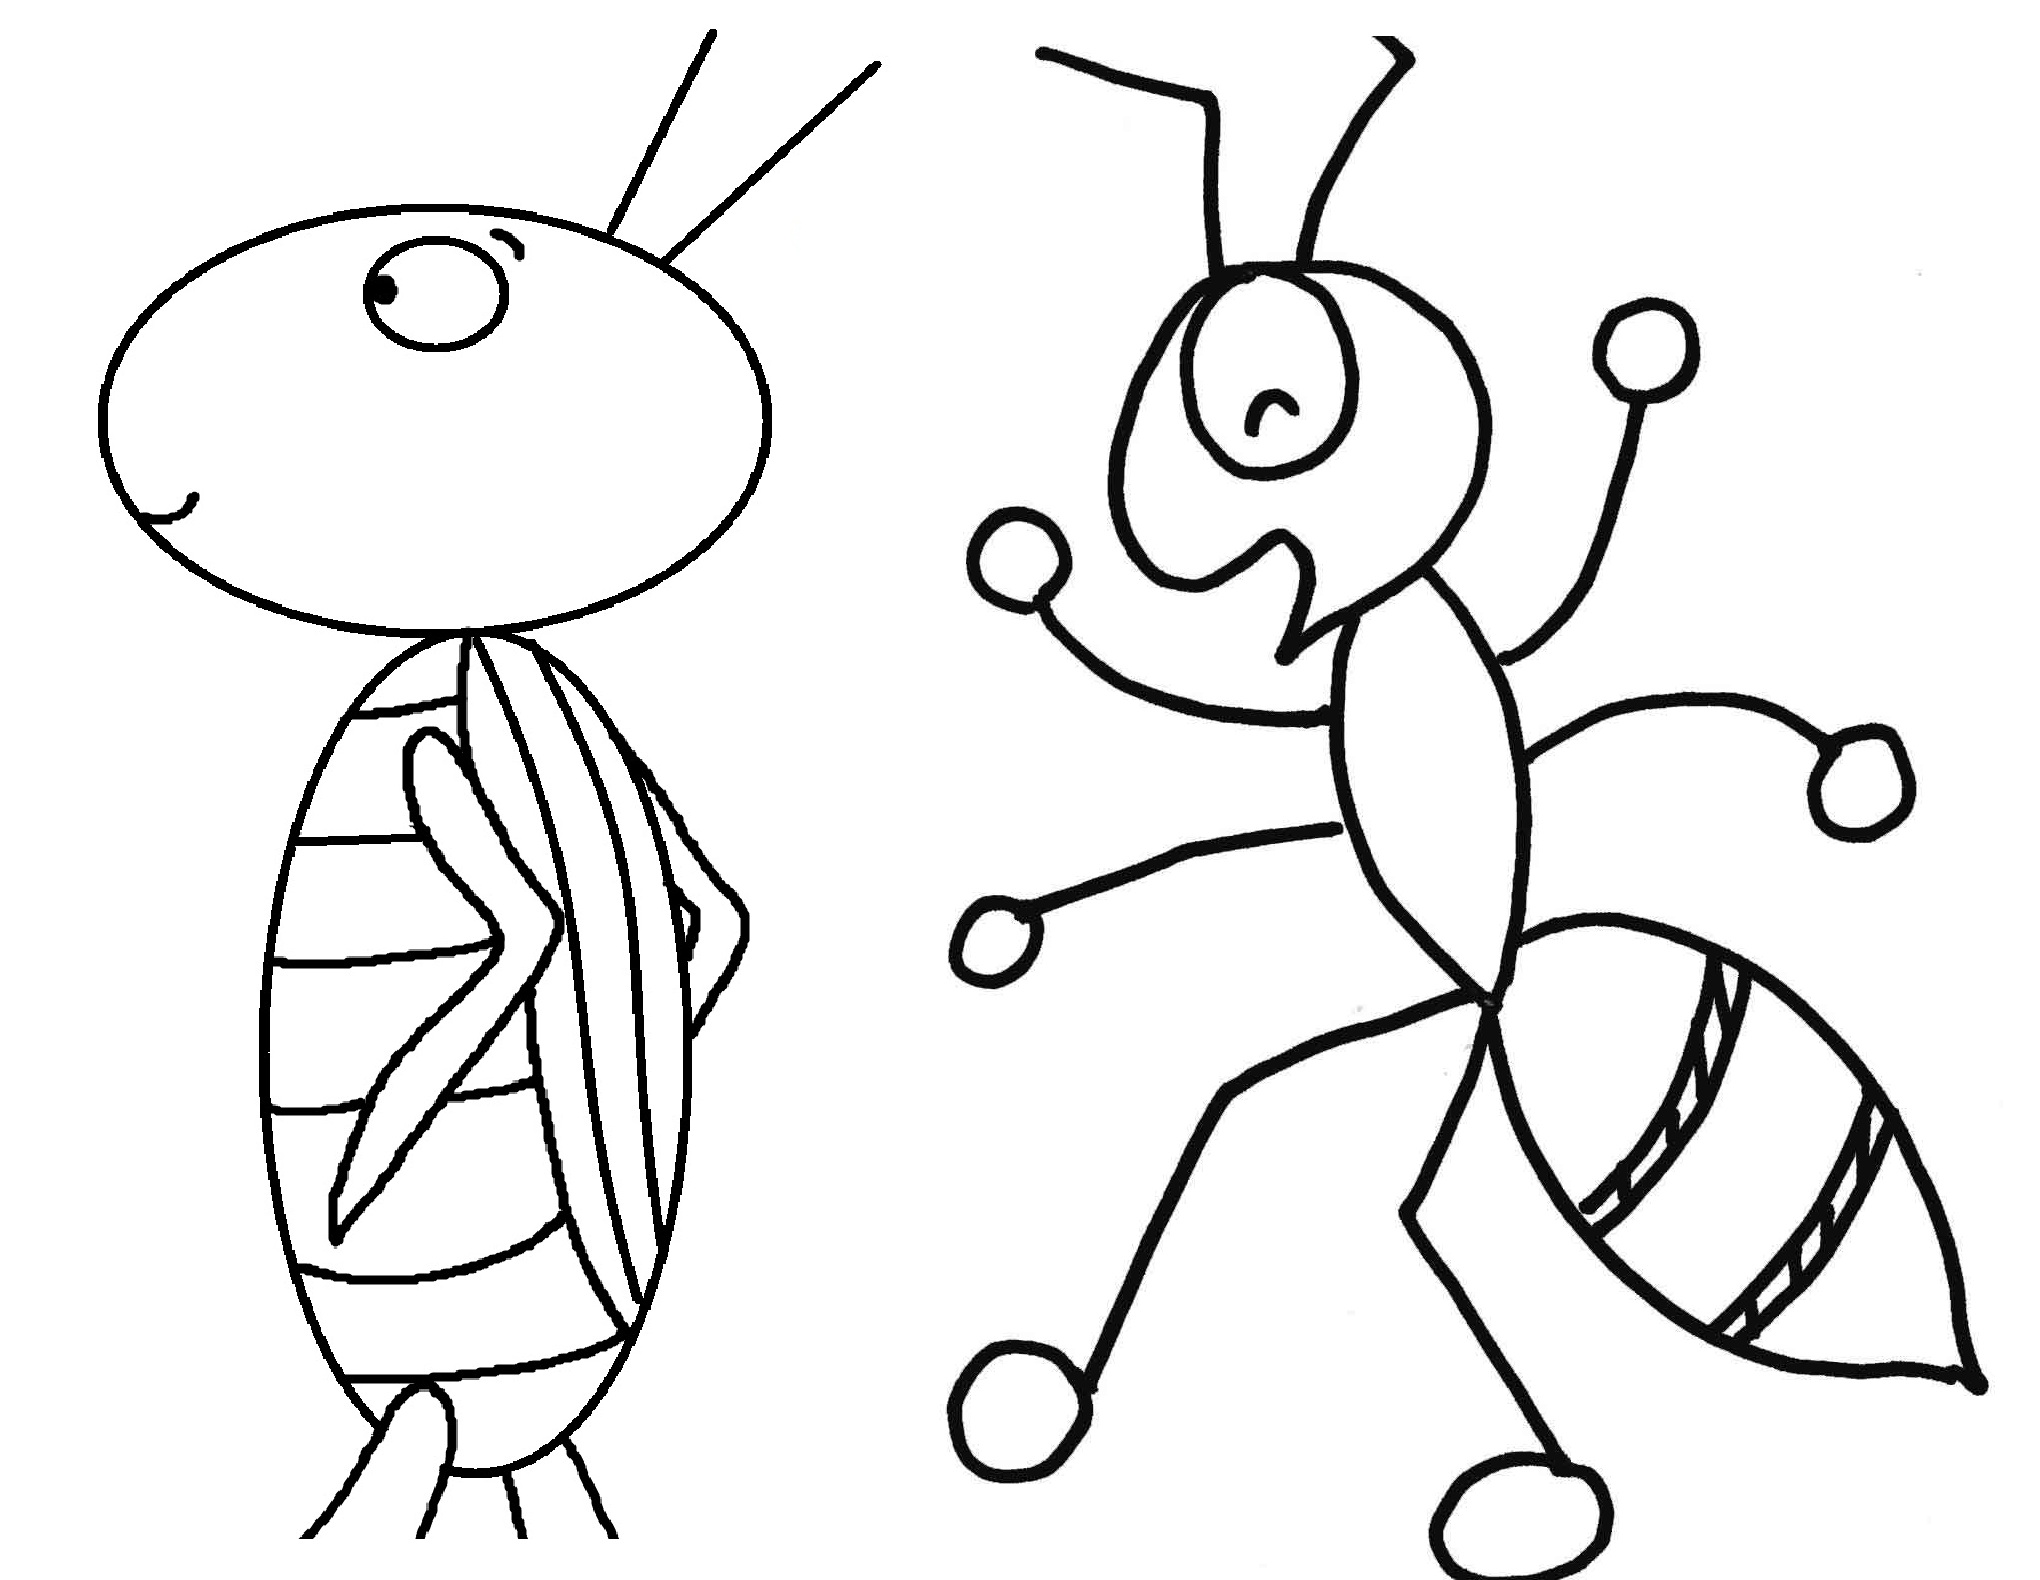 Uncategorized Ants Coloring Pages printable ant coloring pages me for preschoolers